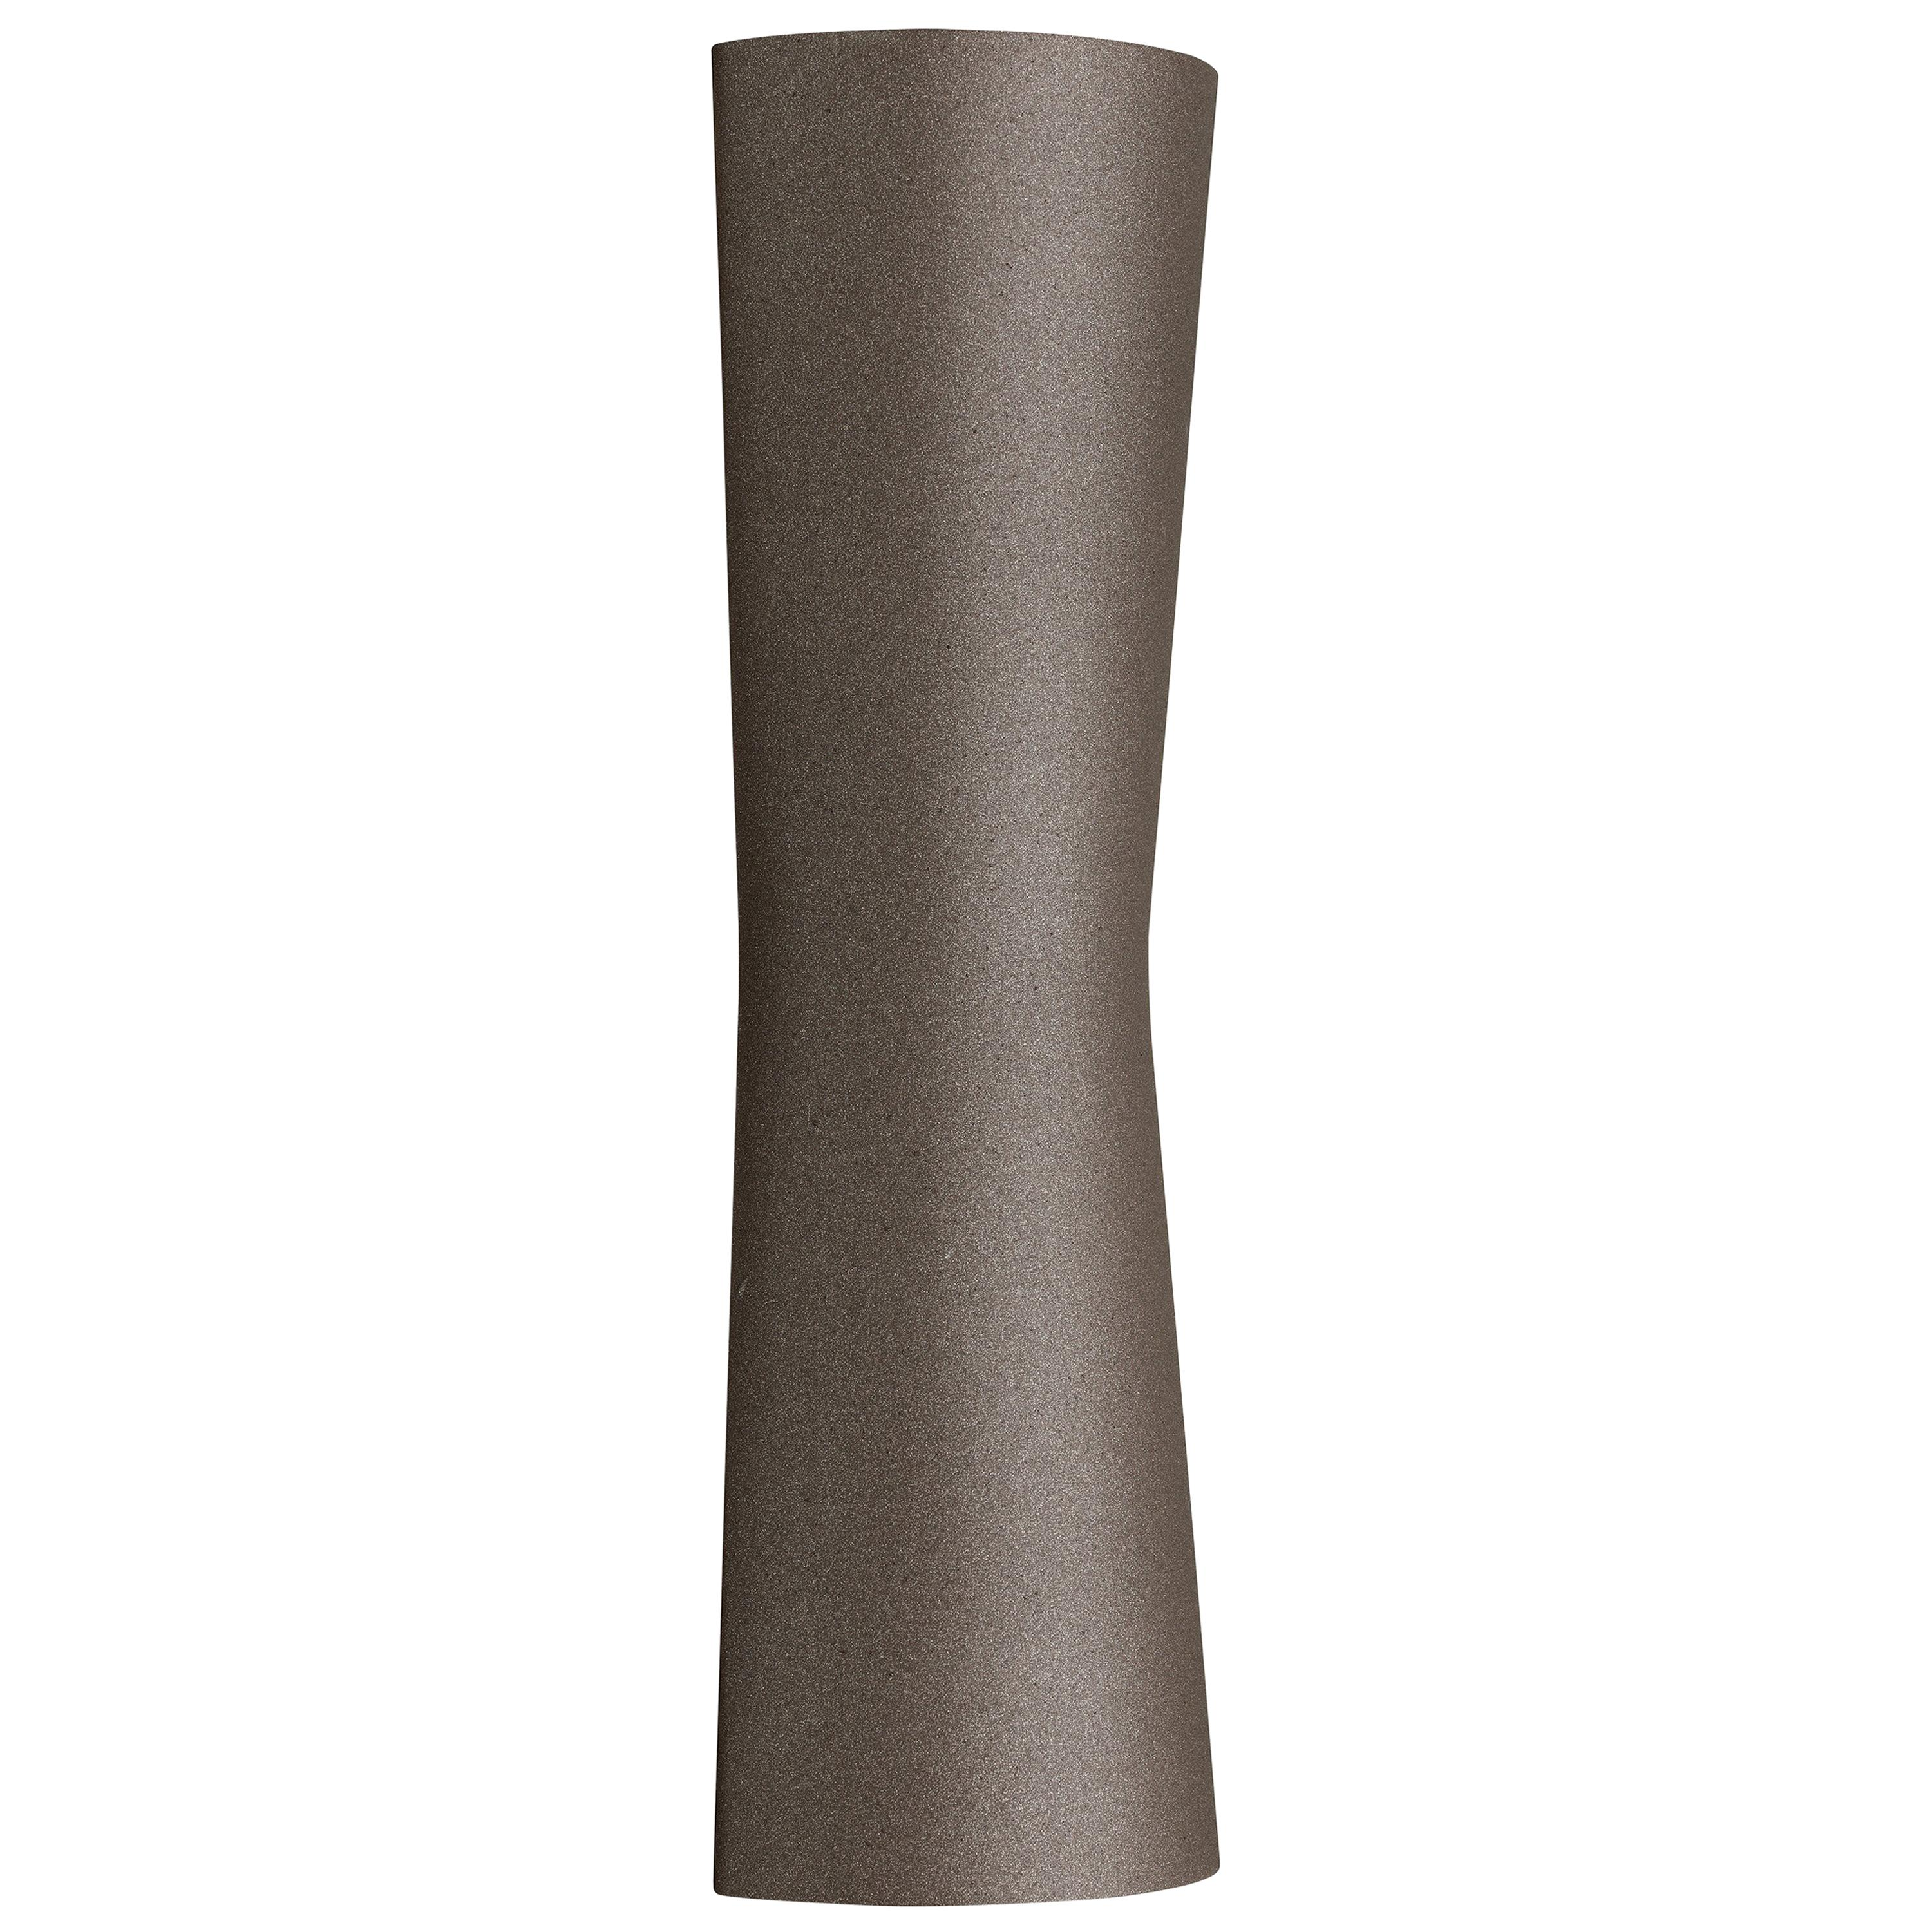 FLOS Clessidra 40° + 40° Outdoor Wall Lamp in Deep Brown by Antonio Citterio